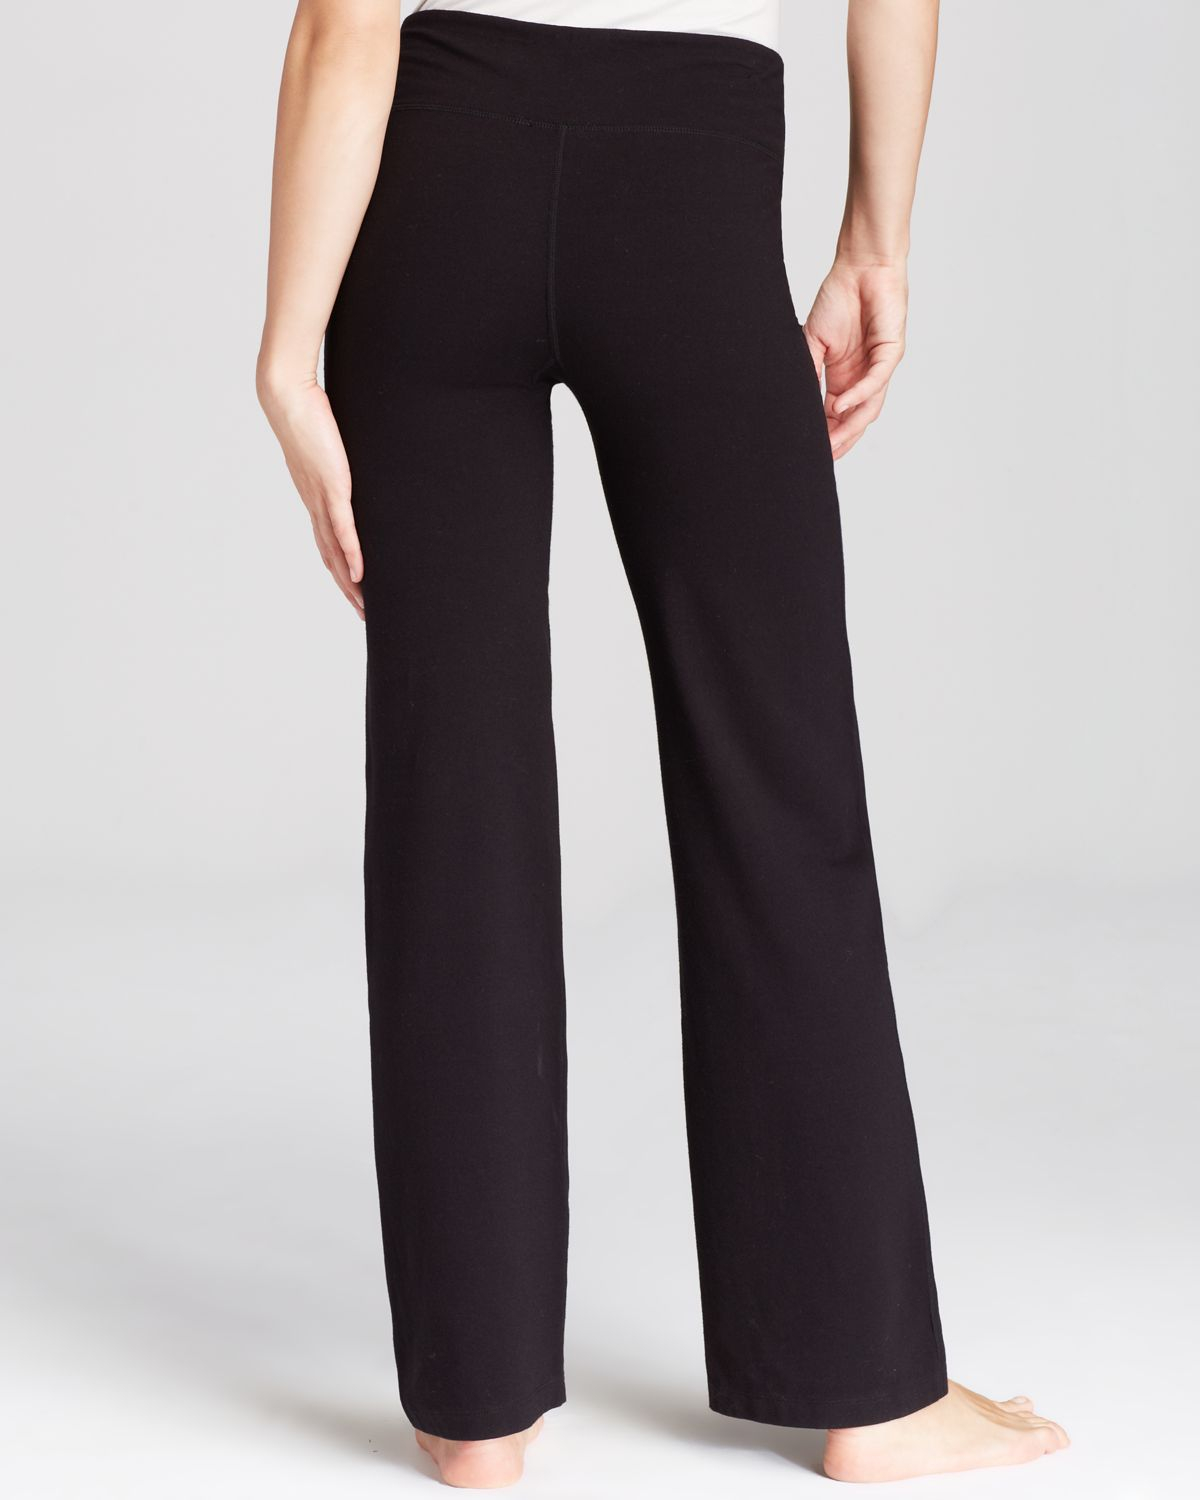 Two by vince camuto Wide Leg Yoga Pants in Black | Lyst